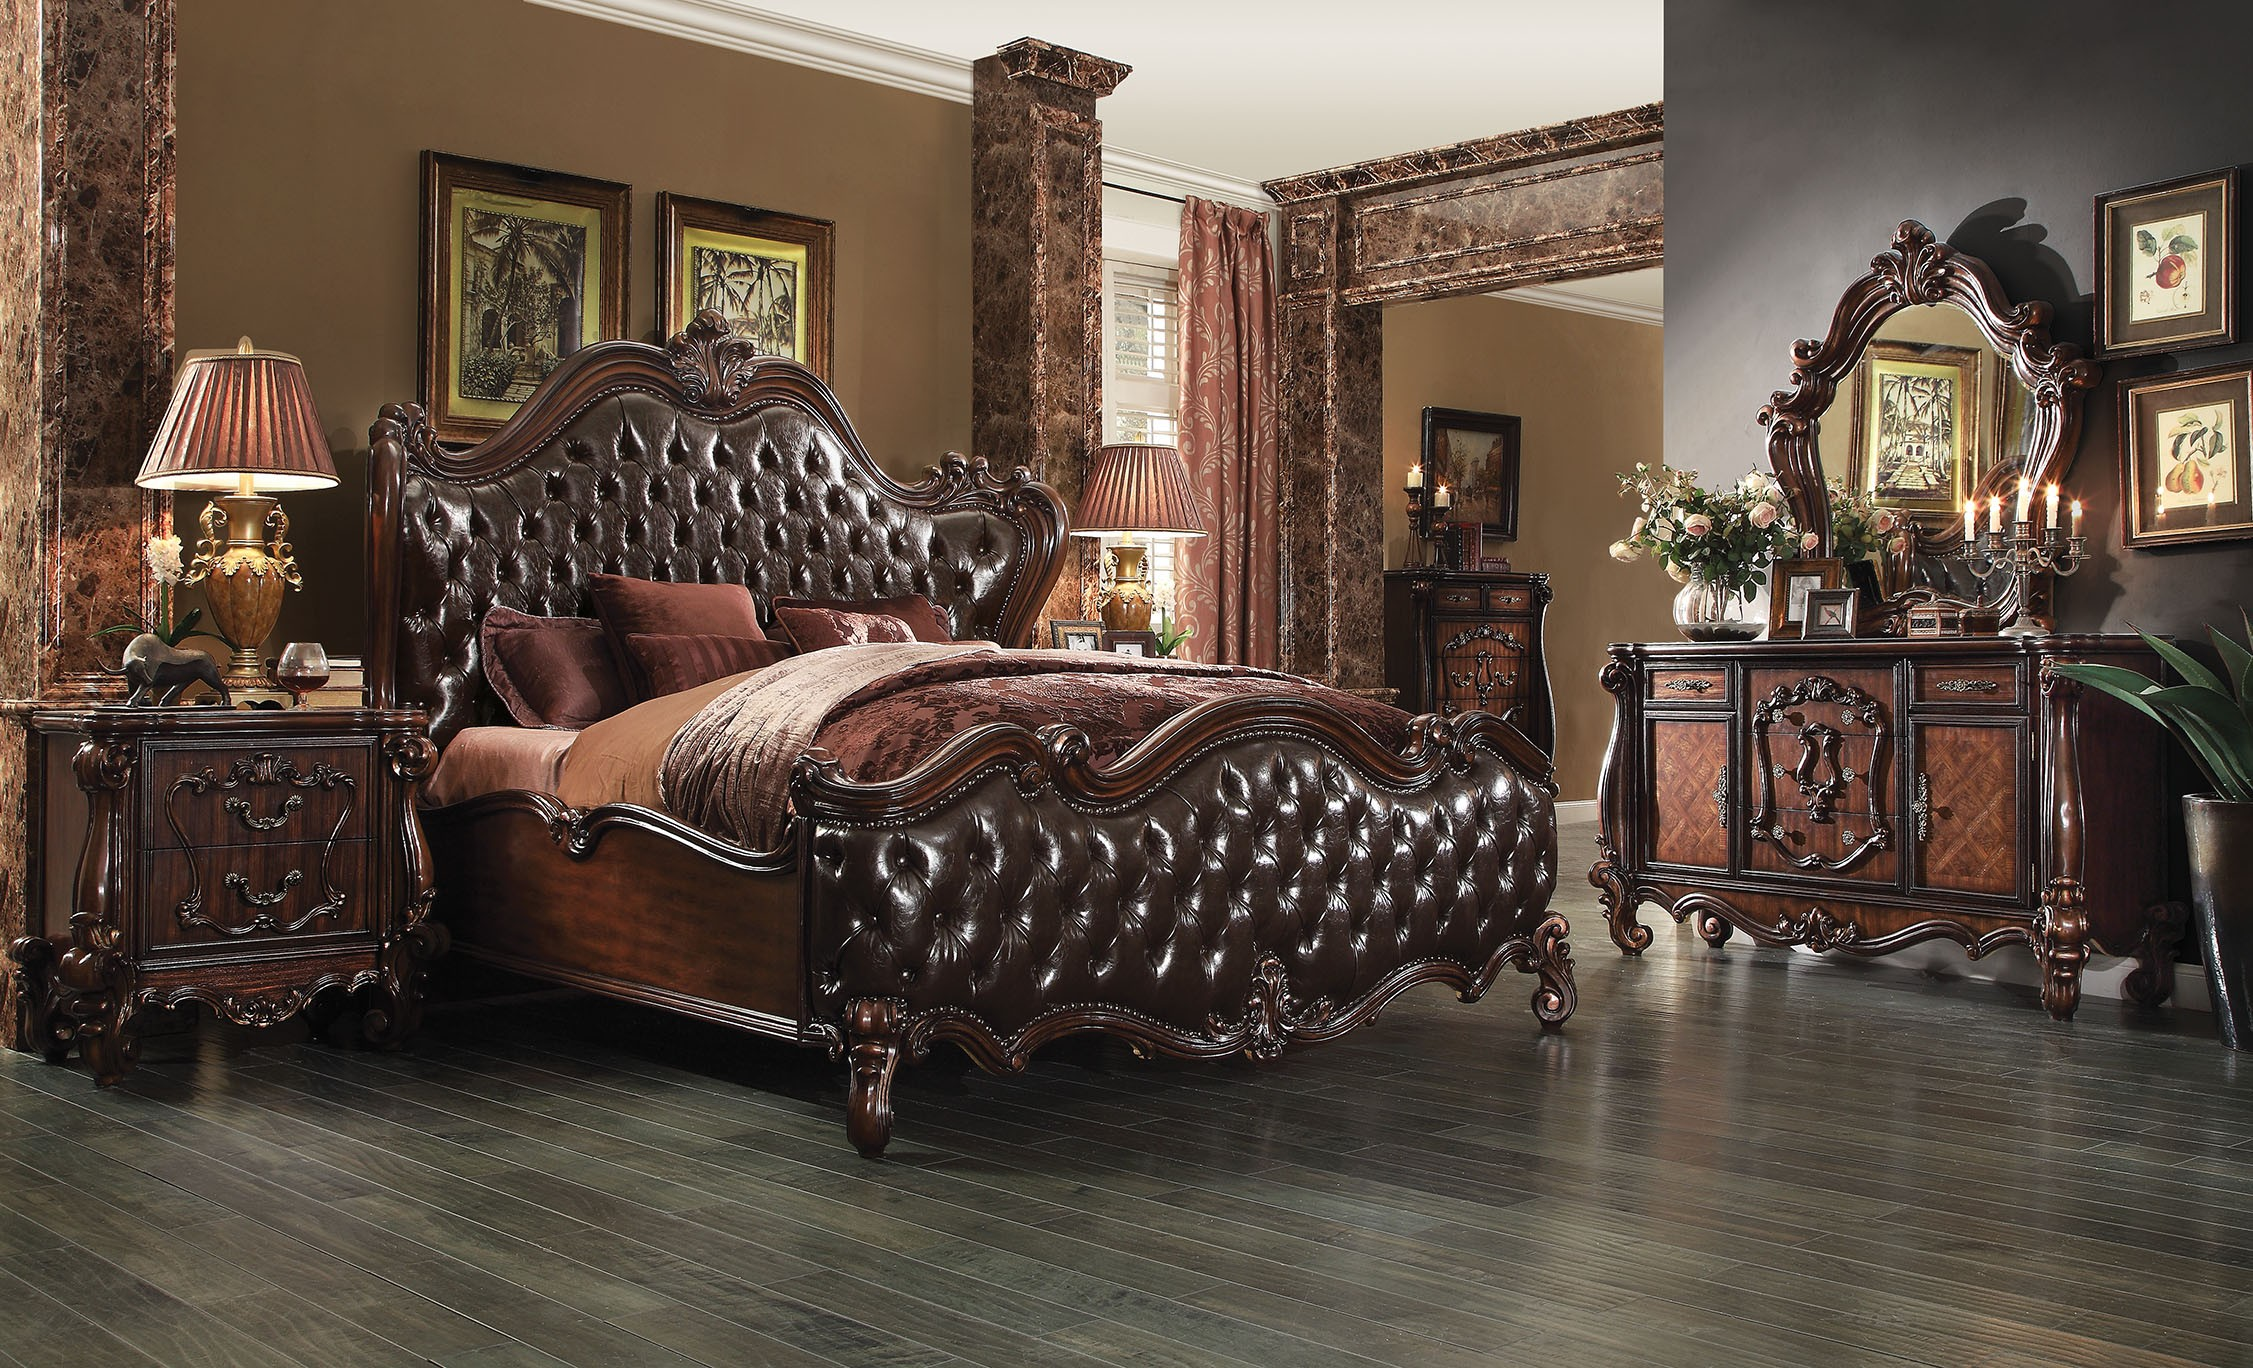 Cool Queen Bedroom Sets On Sale Collection